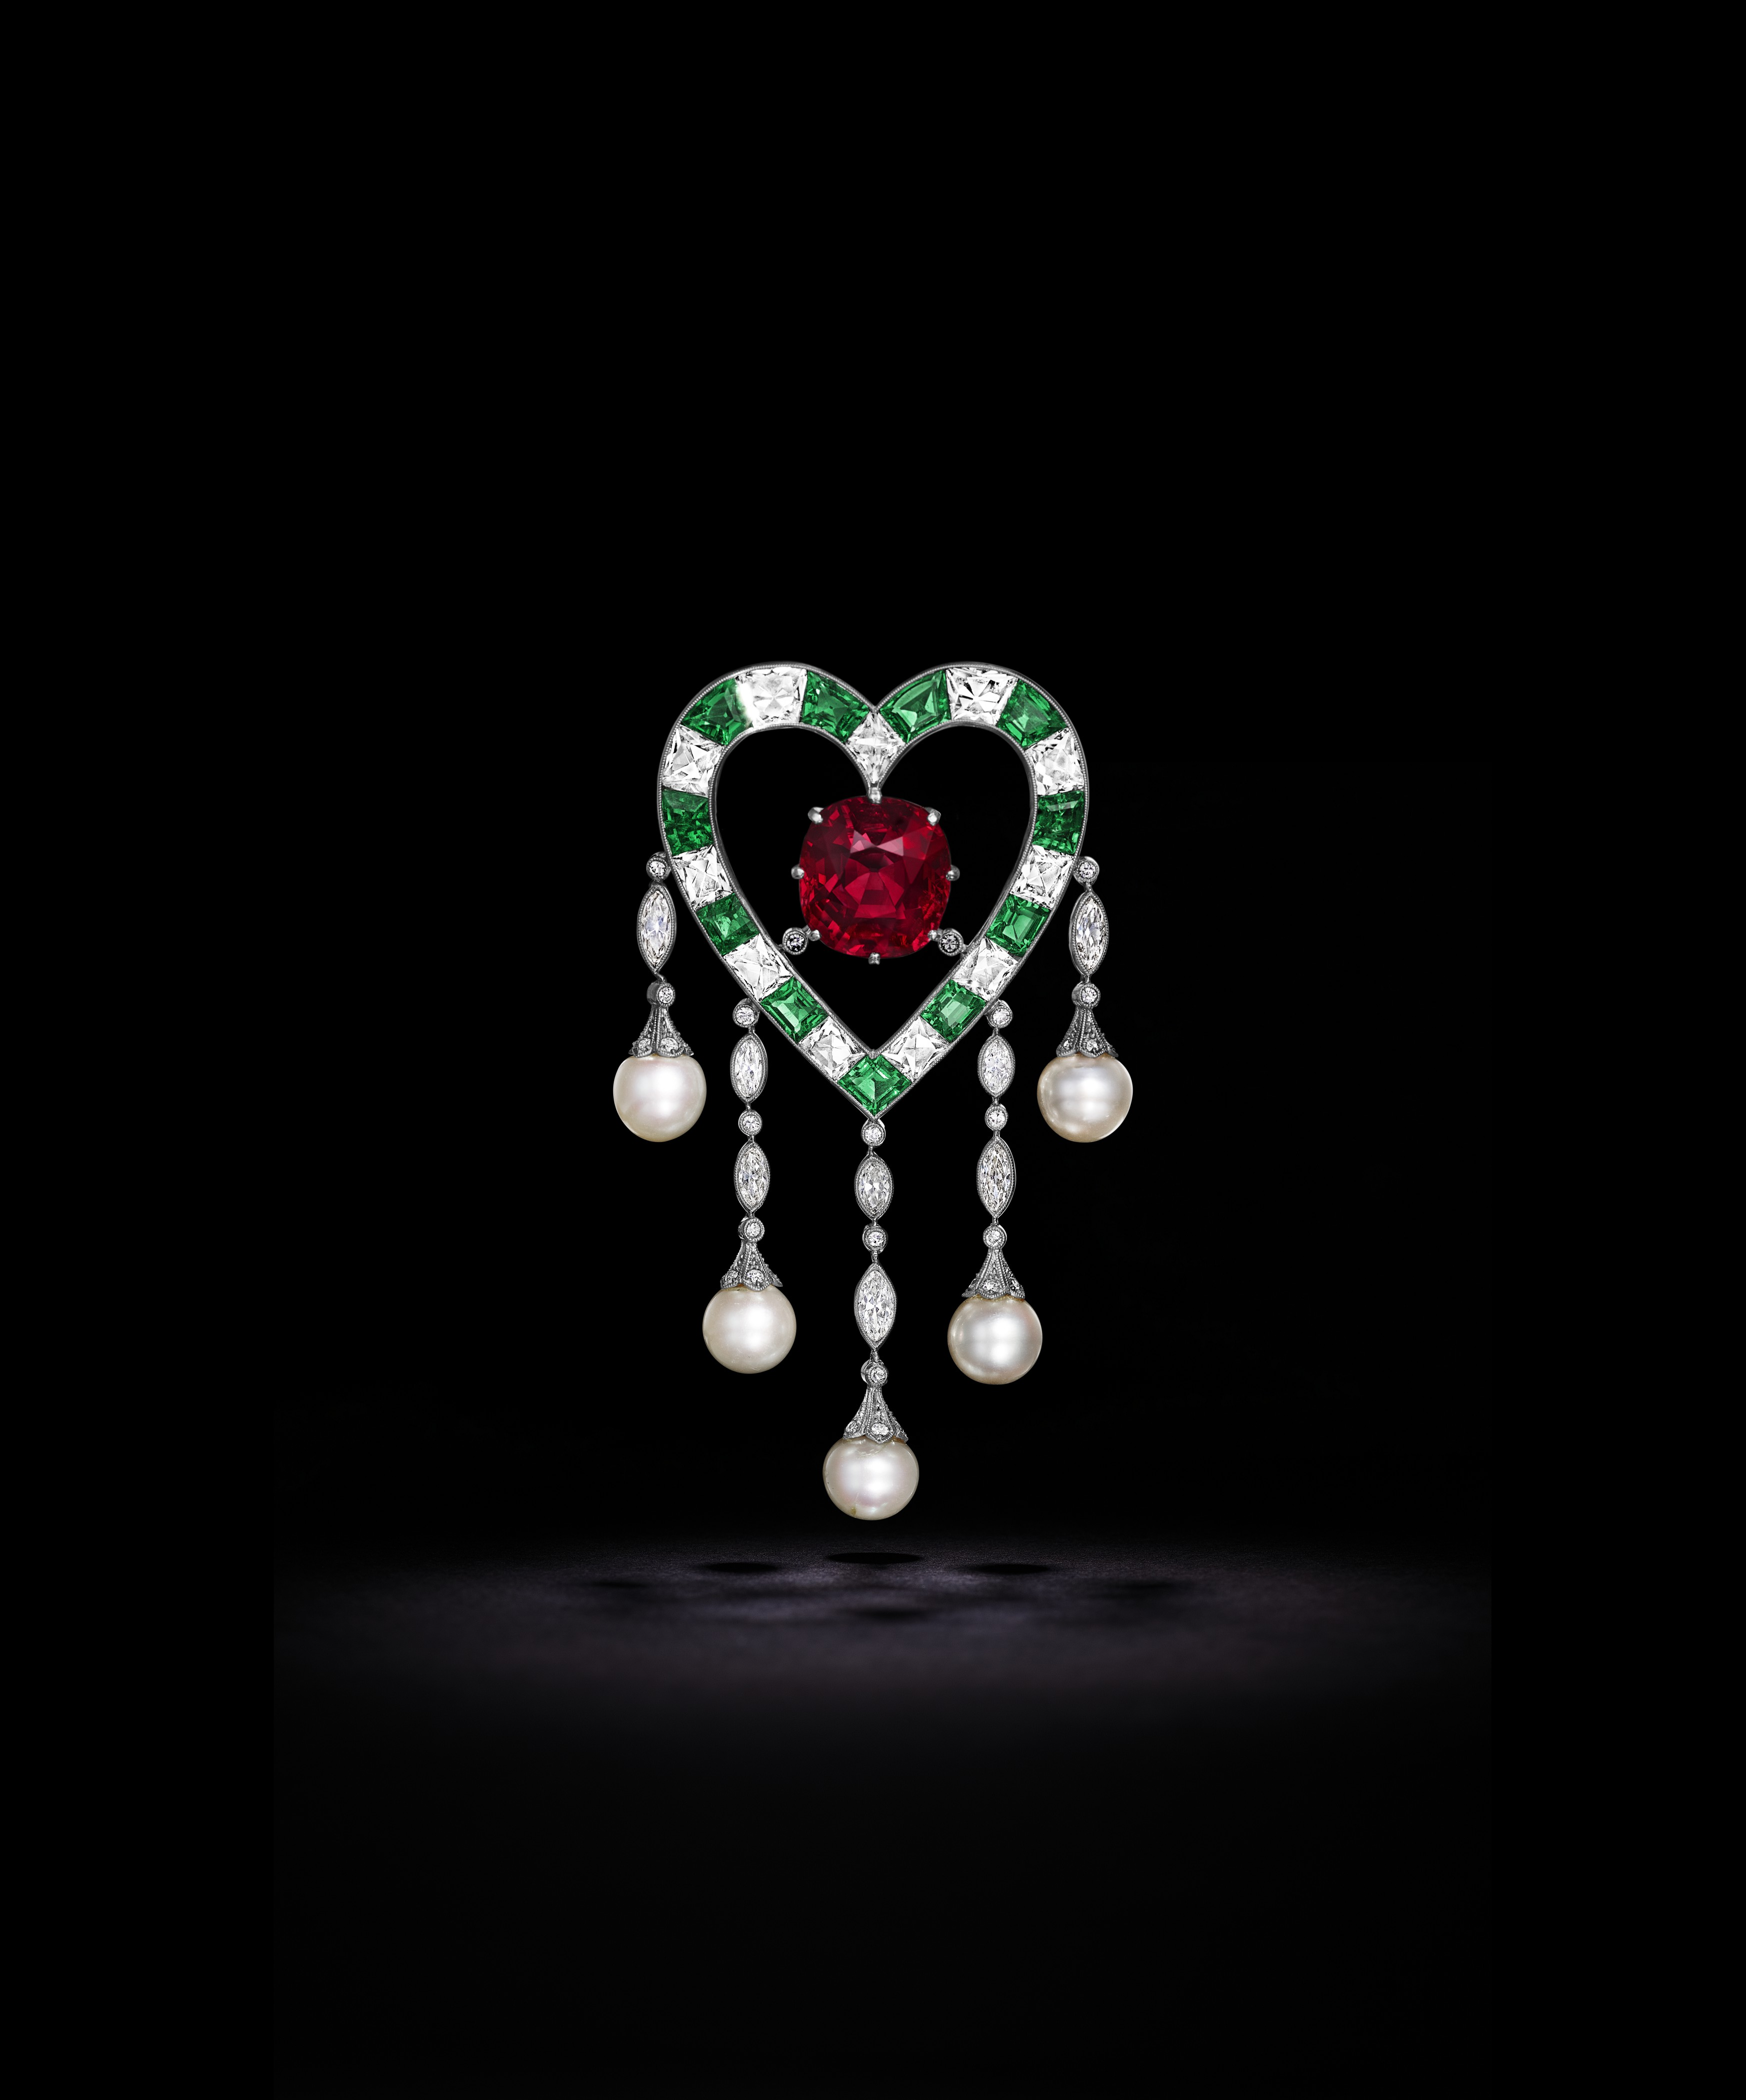 'THE DUPONT RUBY' AN EXQUISITE RUBY, EMERALD, DIAMOND AND NATURAL PEARL BROOCH